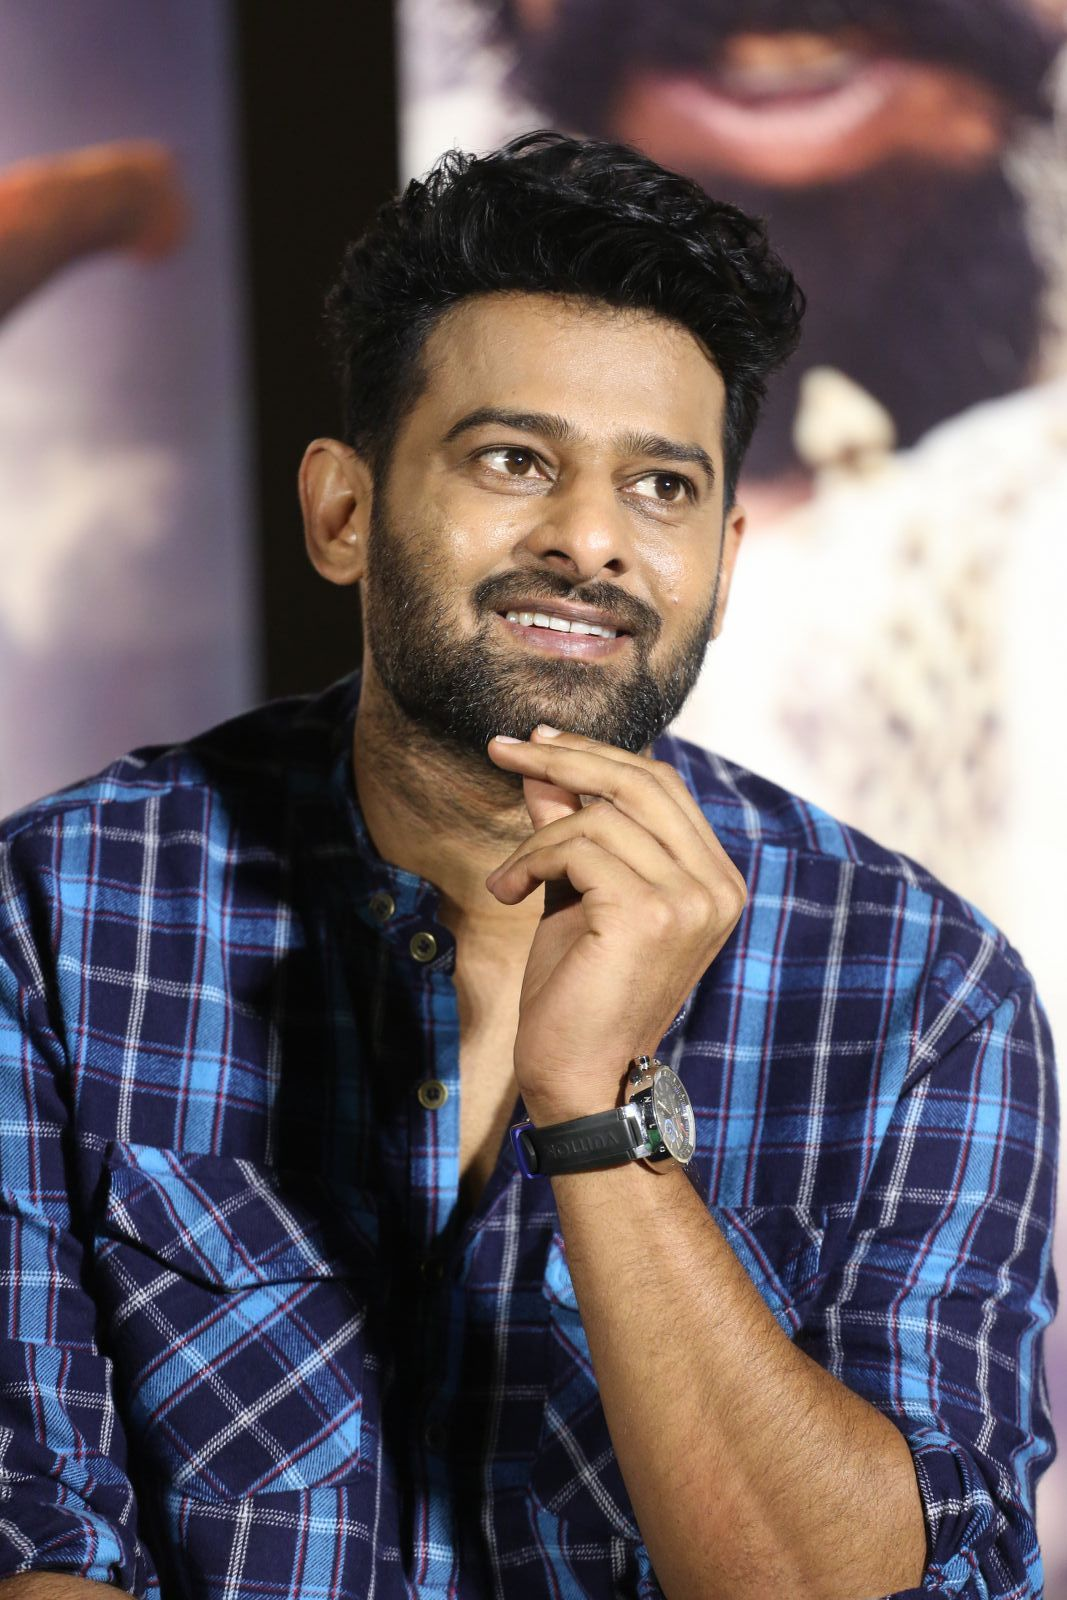 Bahubali Prabhas says a heartfelt thank you to his fans and proves he is a real DARLING! #FansnStars